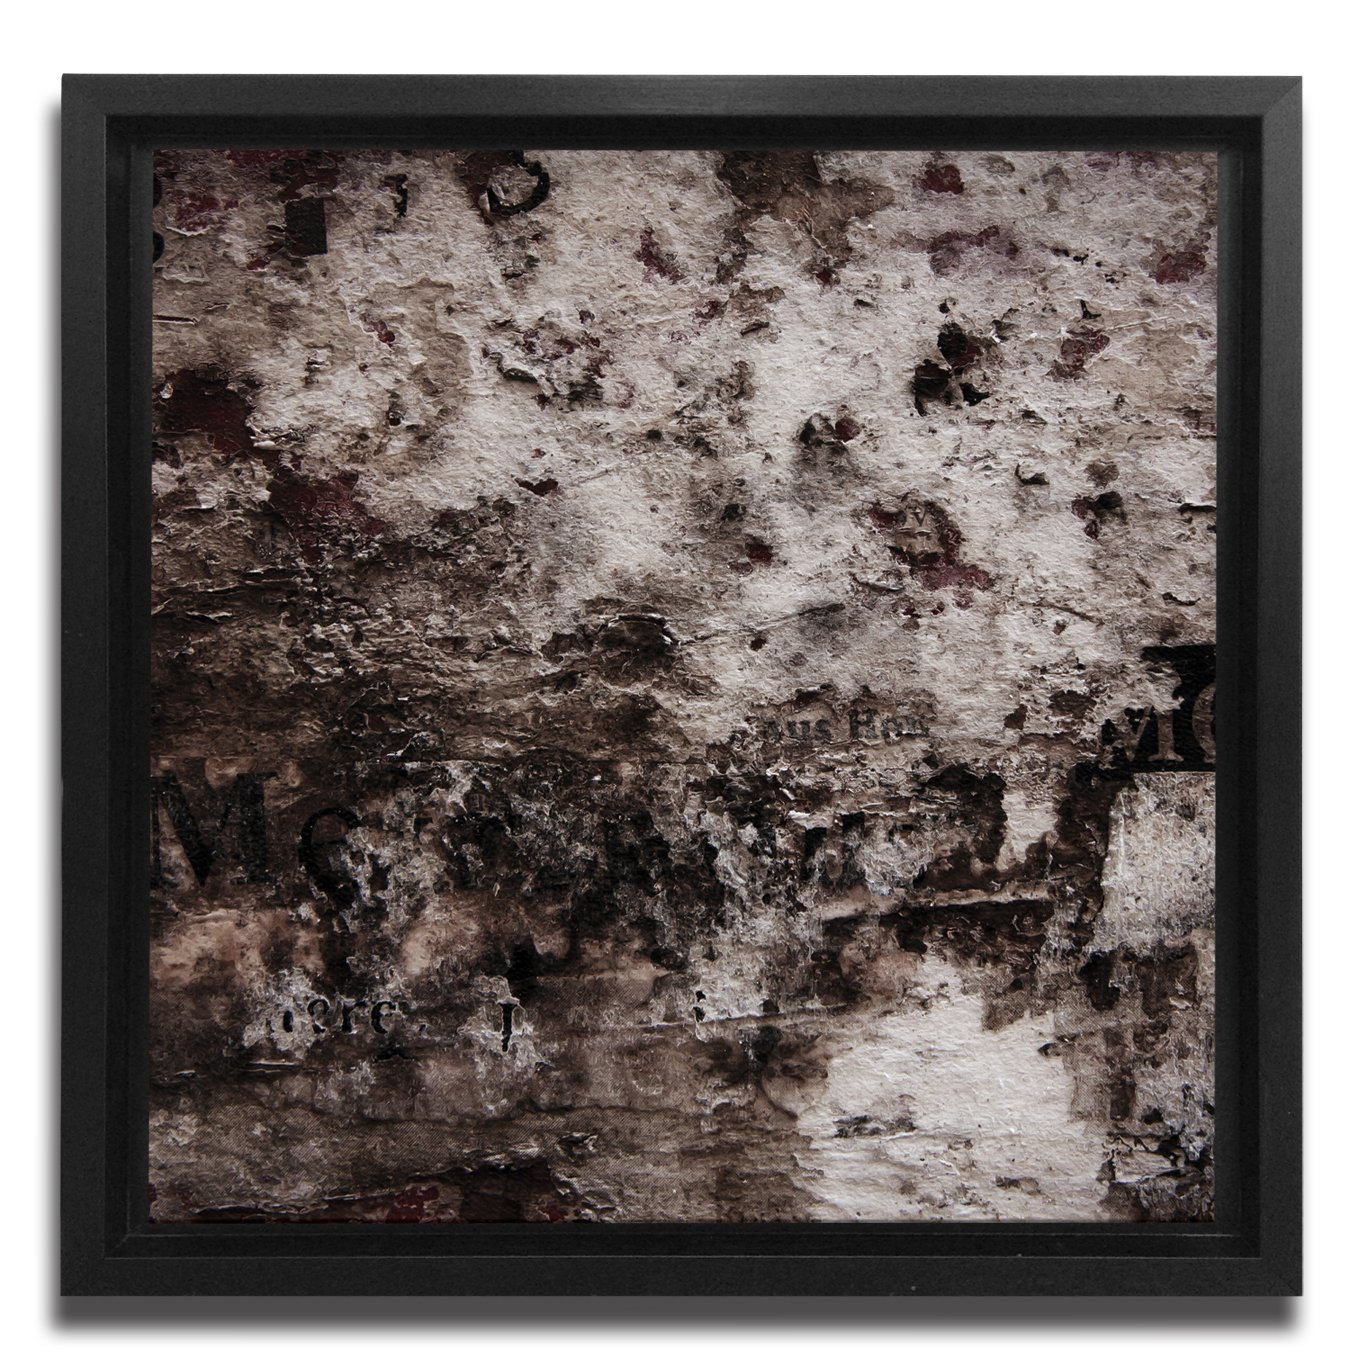 JP London Ready to Hang Made in North America Framed 1.5in Thick Gallery Wrap Canvas Art Grunge Steampunk Grit Wall Abstract 18in SQSFCNV2383